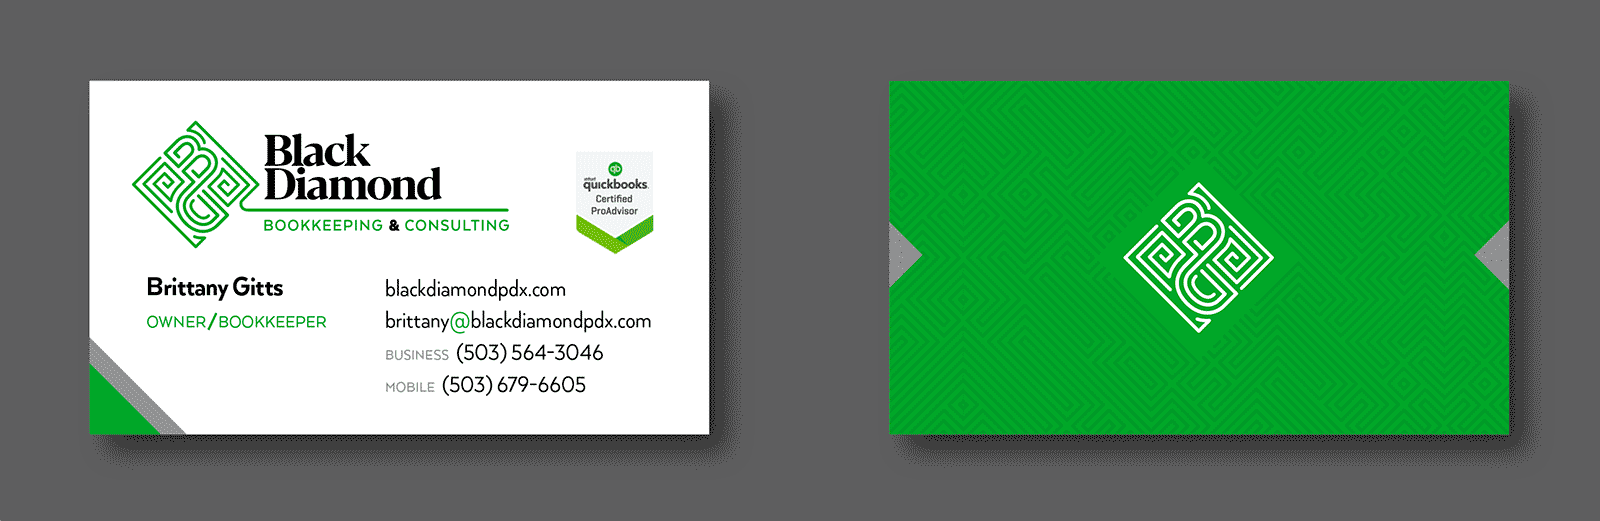 client_blackdiamondbookkeeping_cards